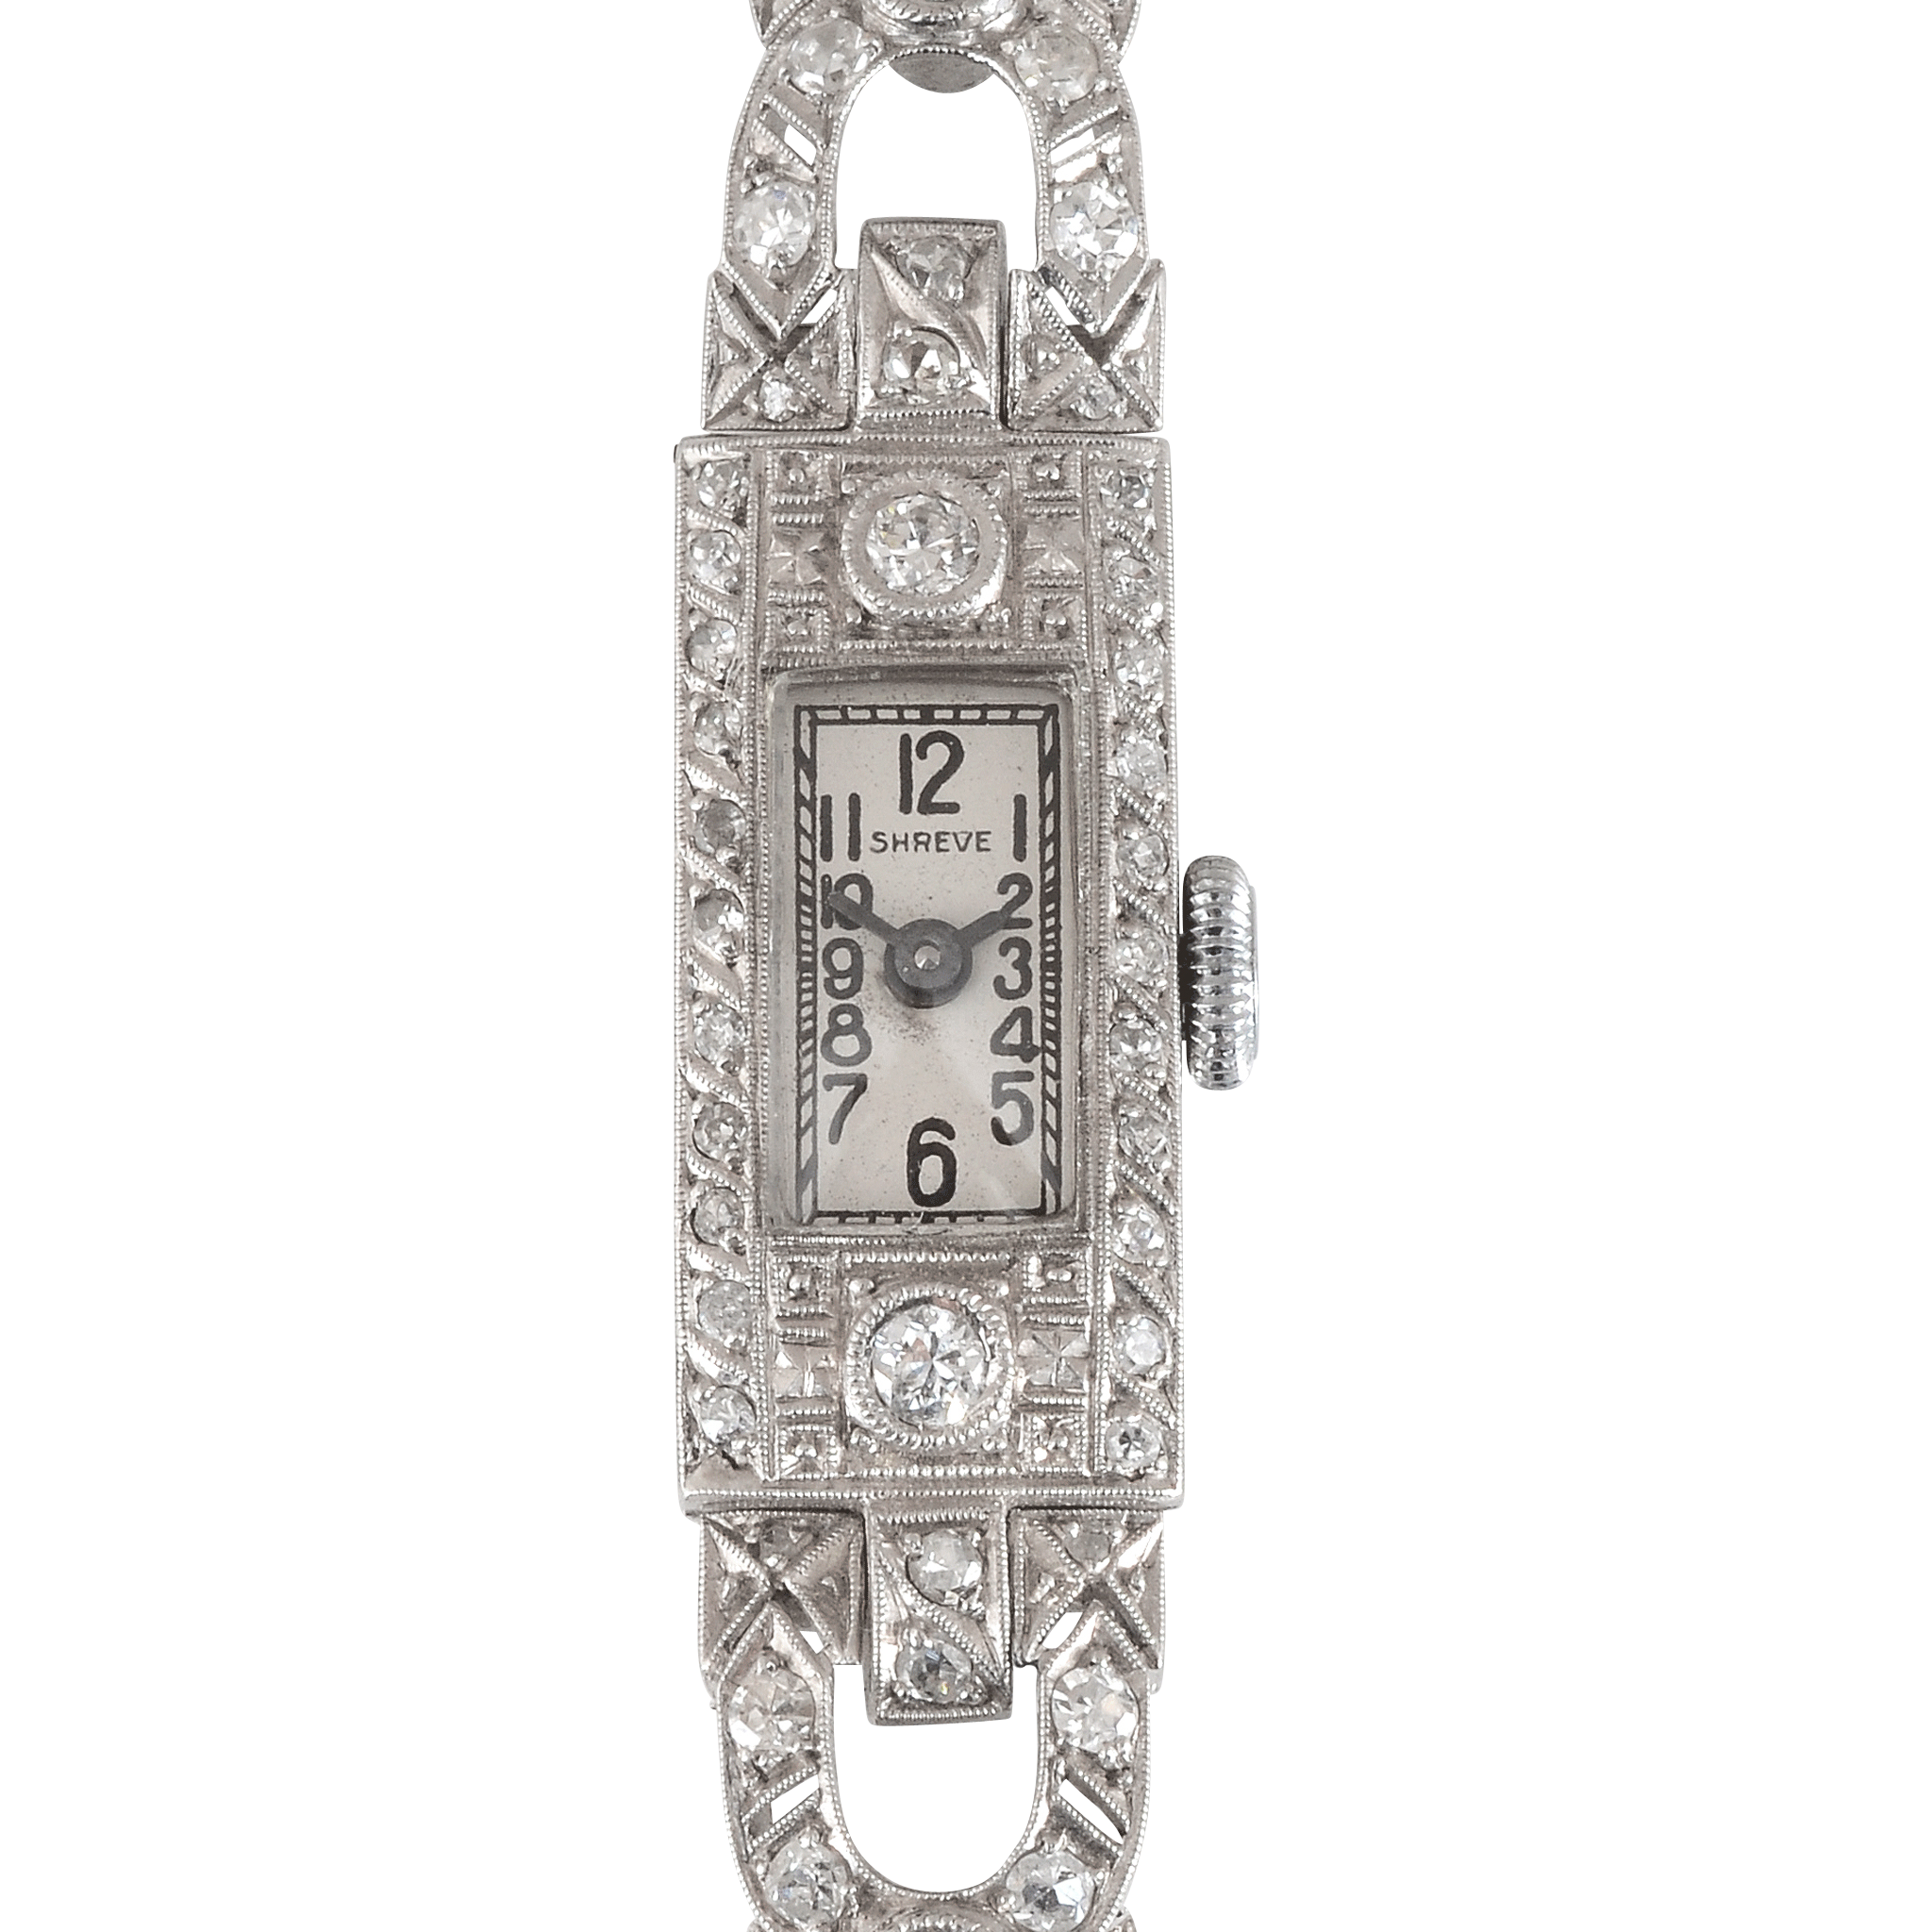 Art Deco Diamond Wrist Watch by Shreve & Co.